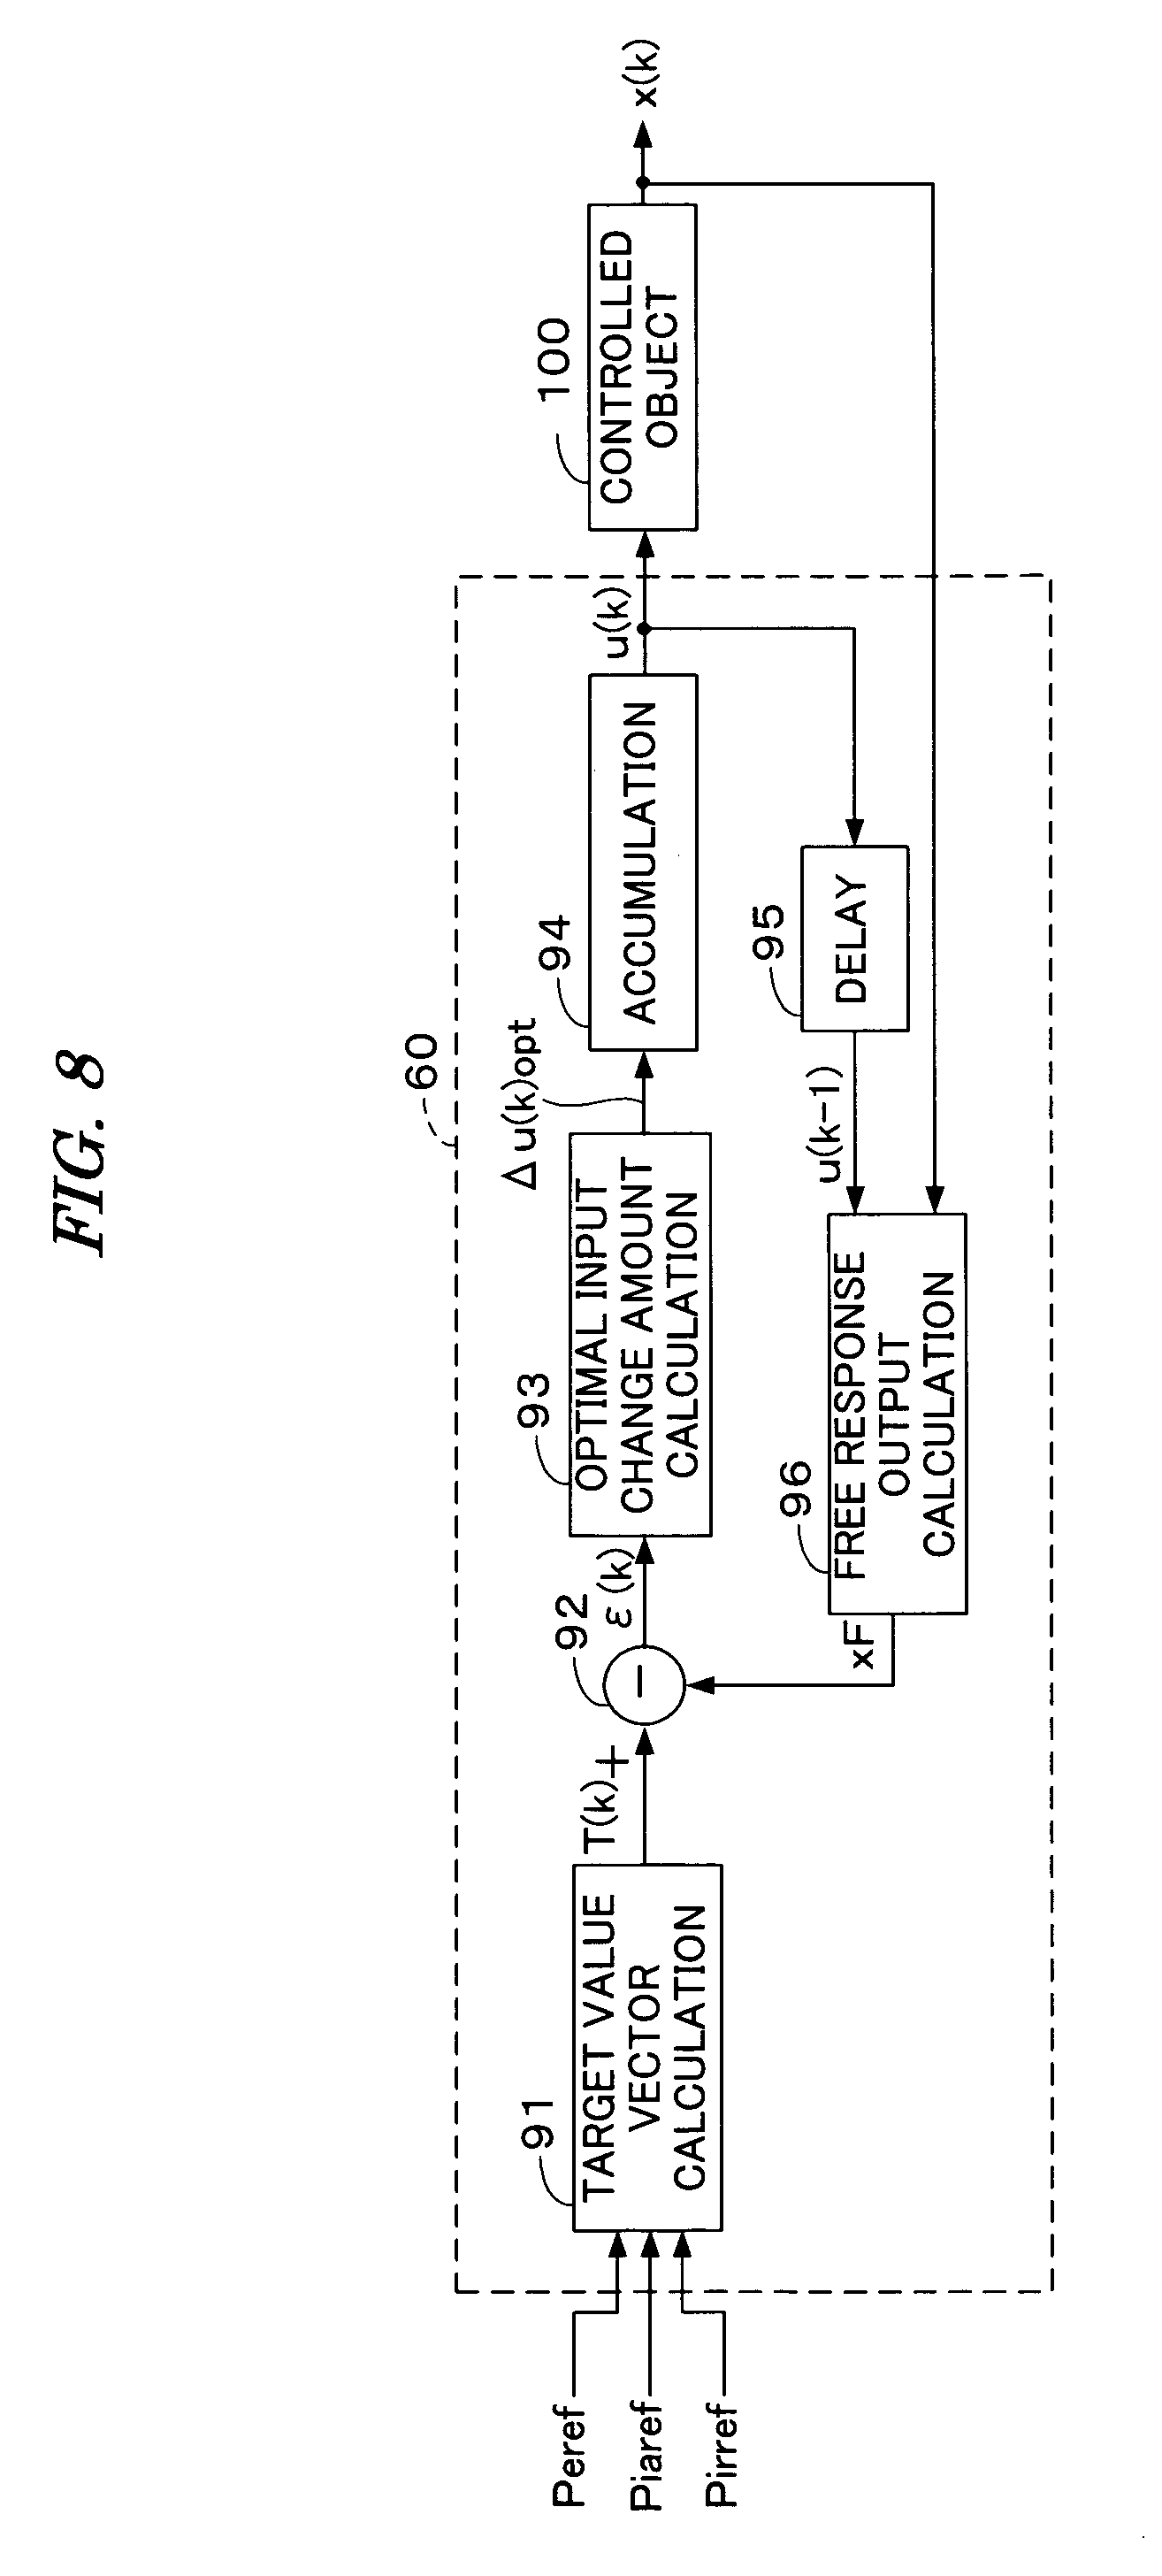 an intake pipe system for a multicylinder internal combustion engine Intake system for internal combustion engines having at least multicylinder engine: us4300488 6 has second valve in smaller resonance pipe shut at medium.